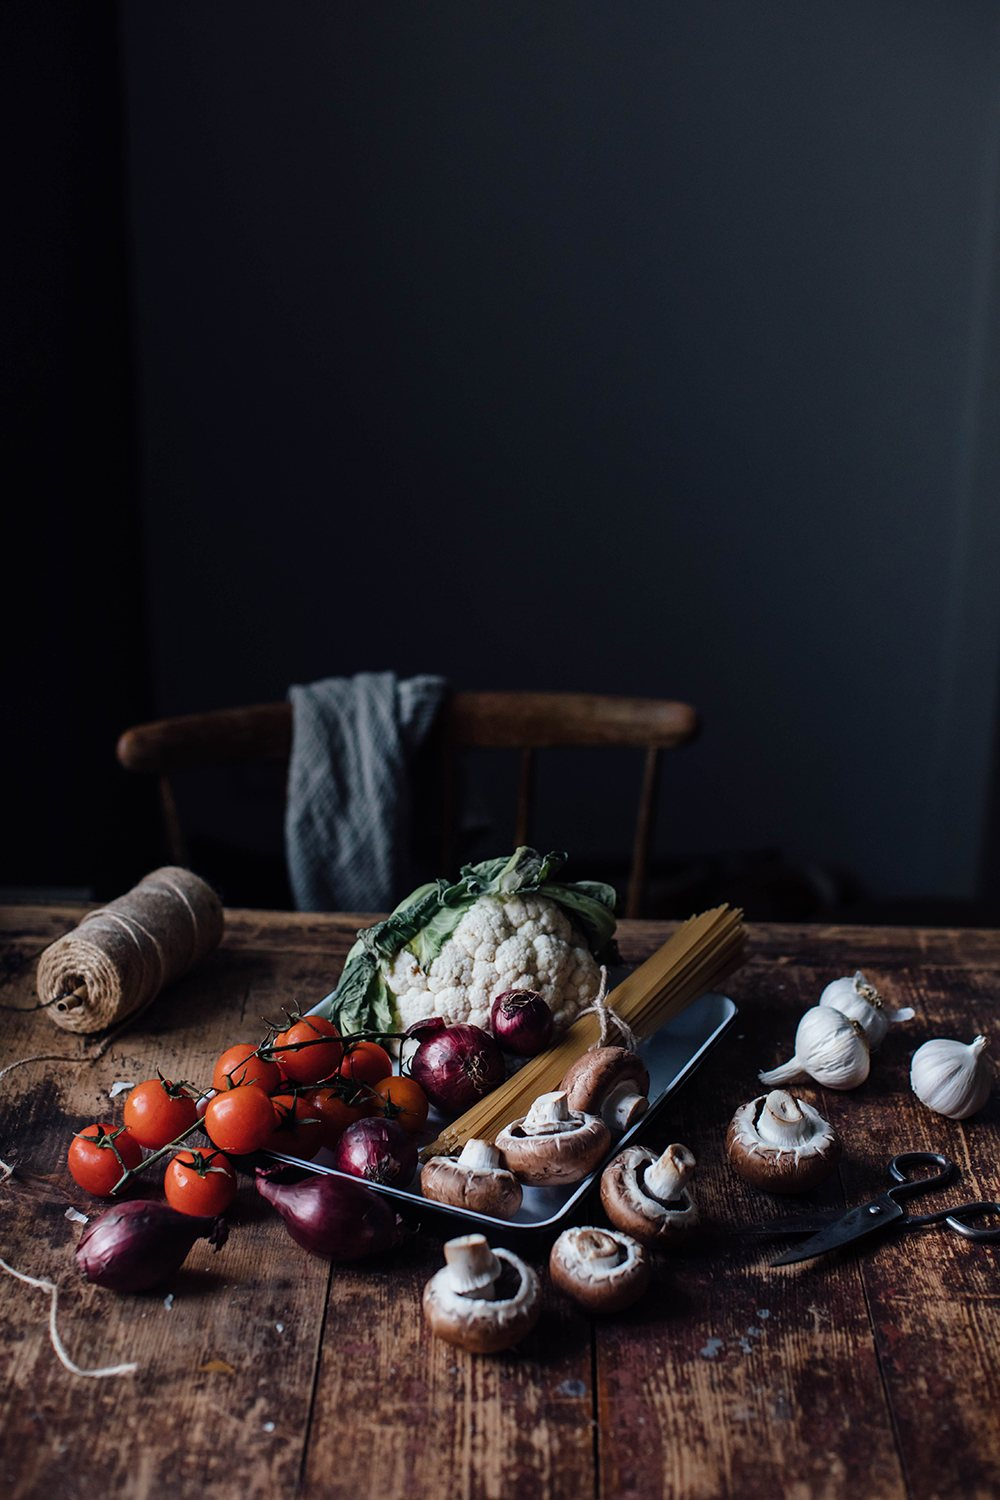 Stillife with vegetables